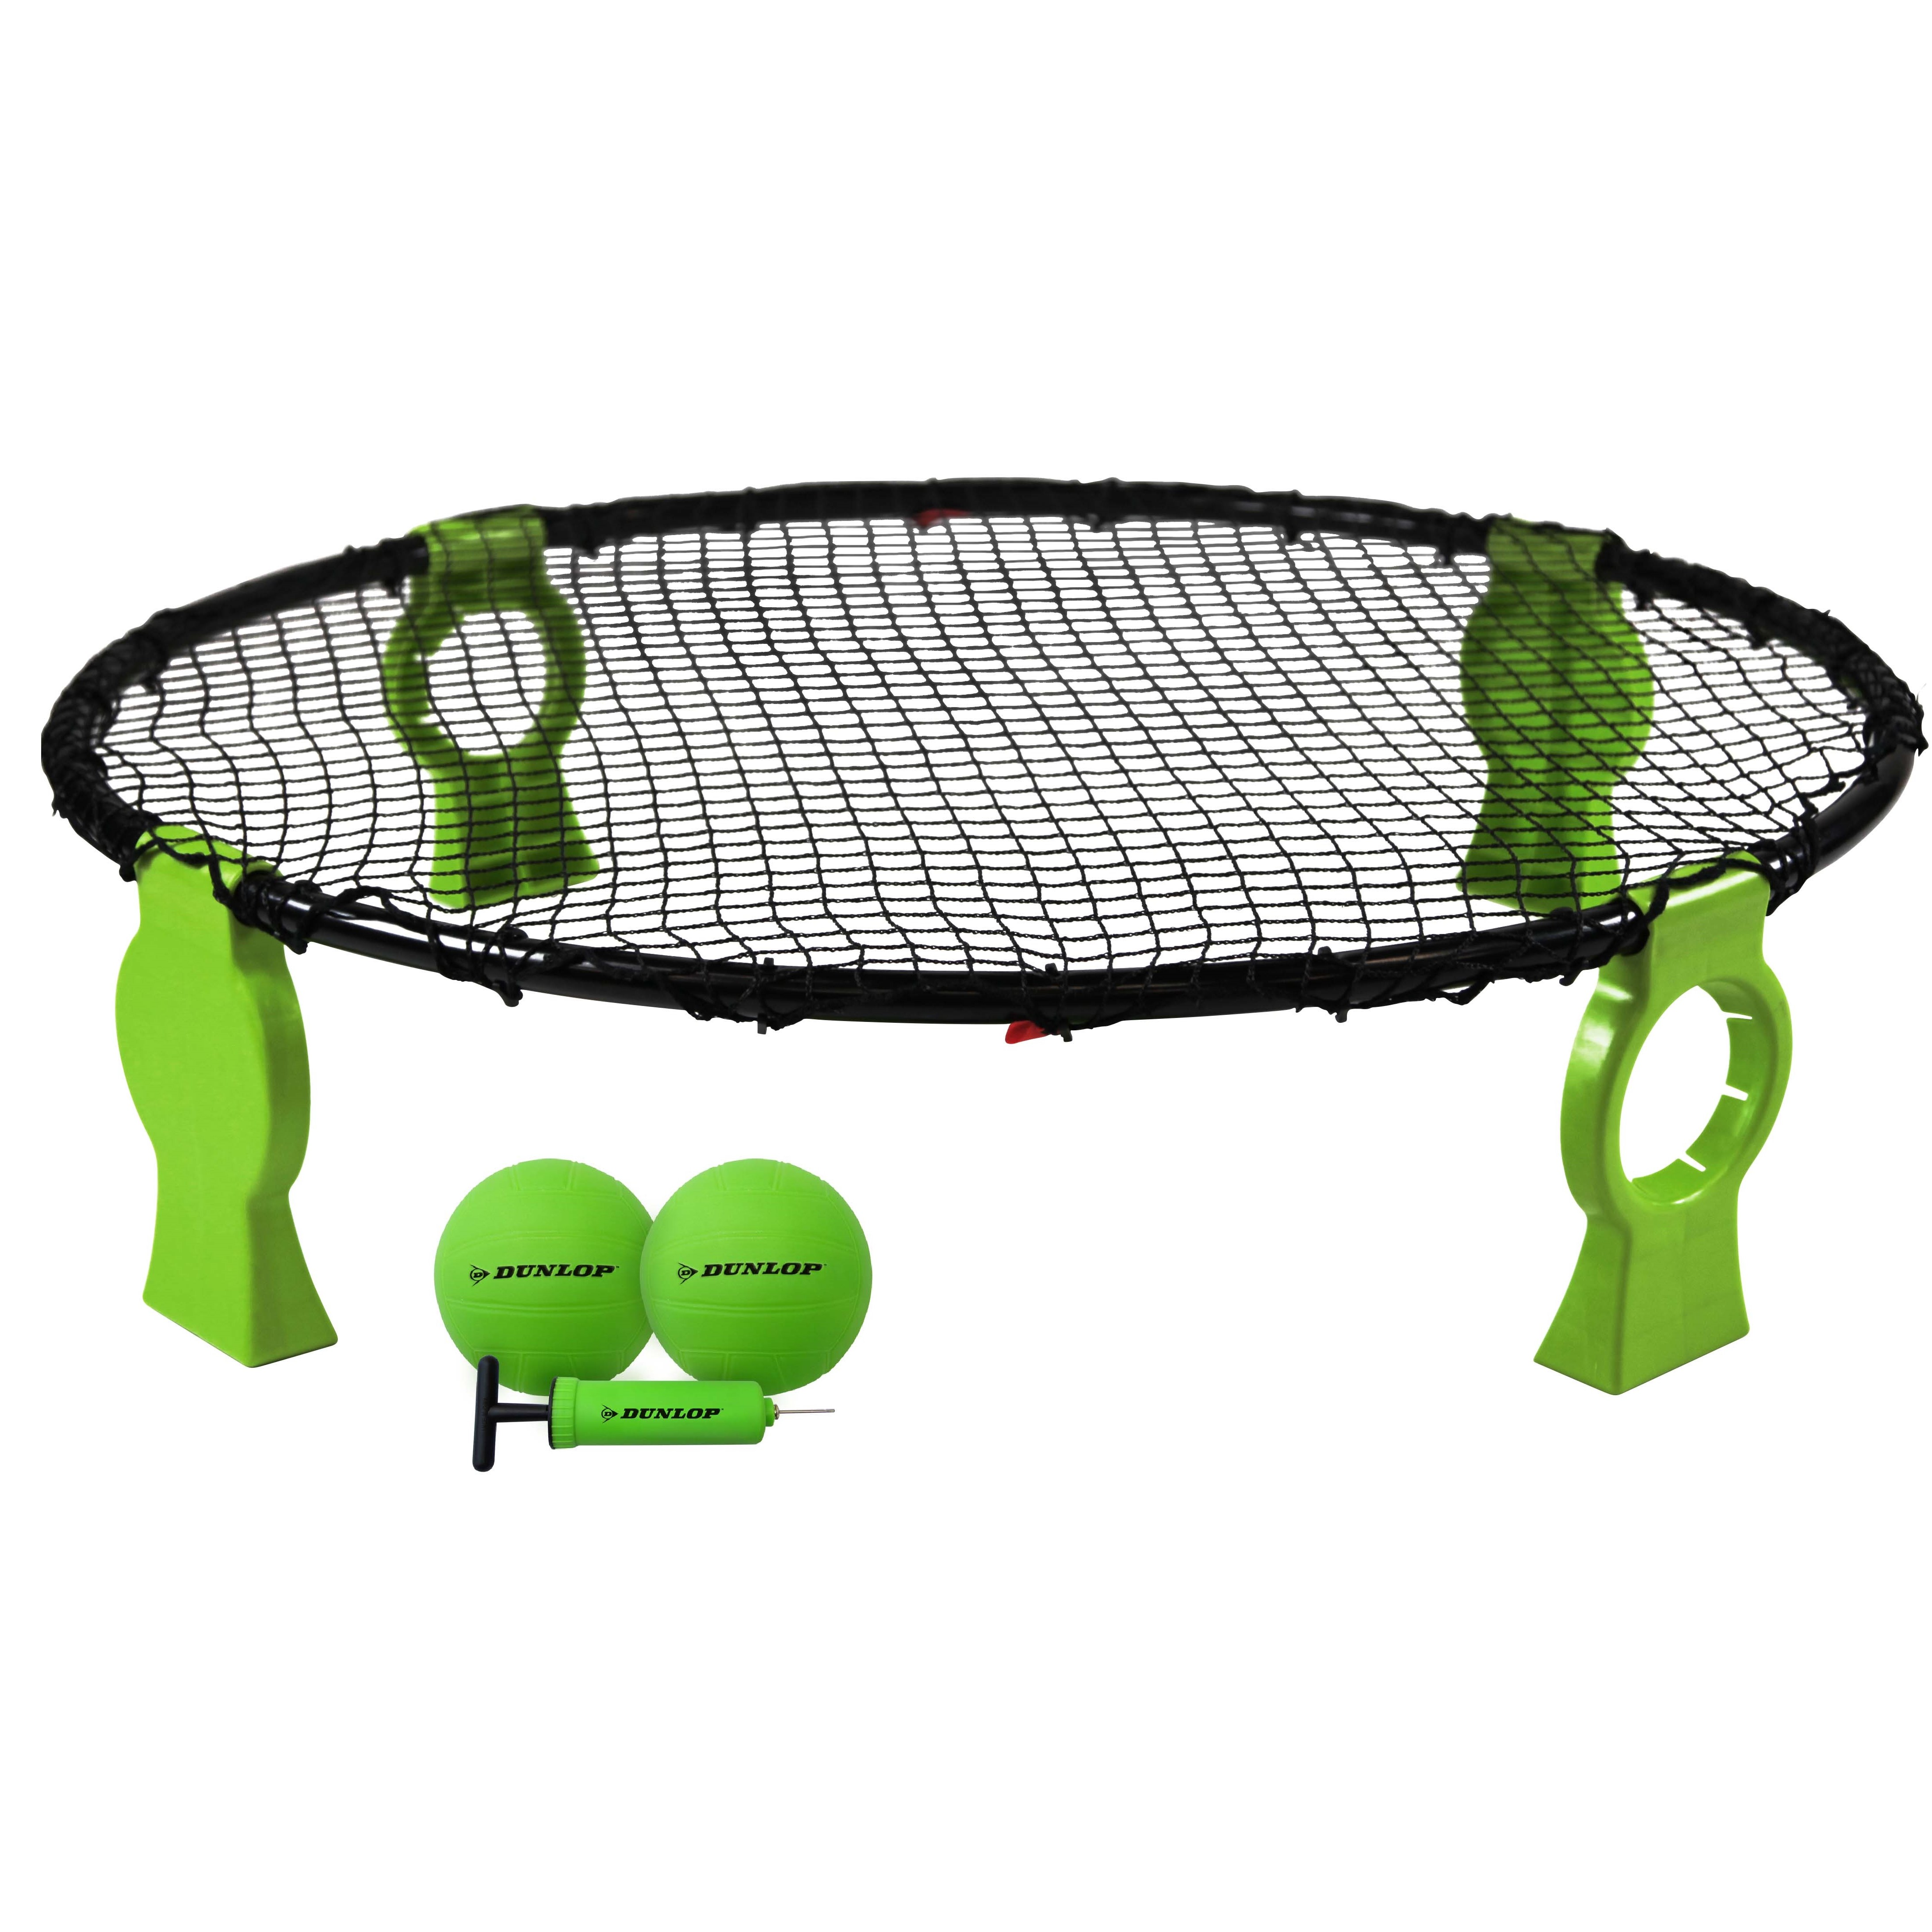 Dunlop Premium Steel Frame 360-Degree Spike Battle Set, includes 2 ball set and an air pump with needle